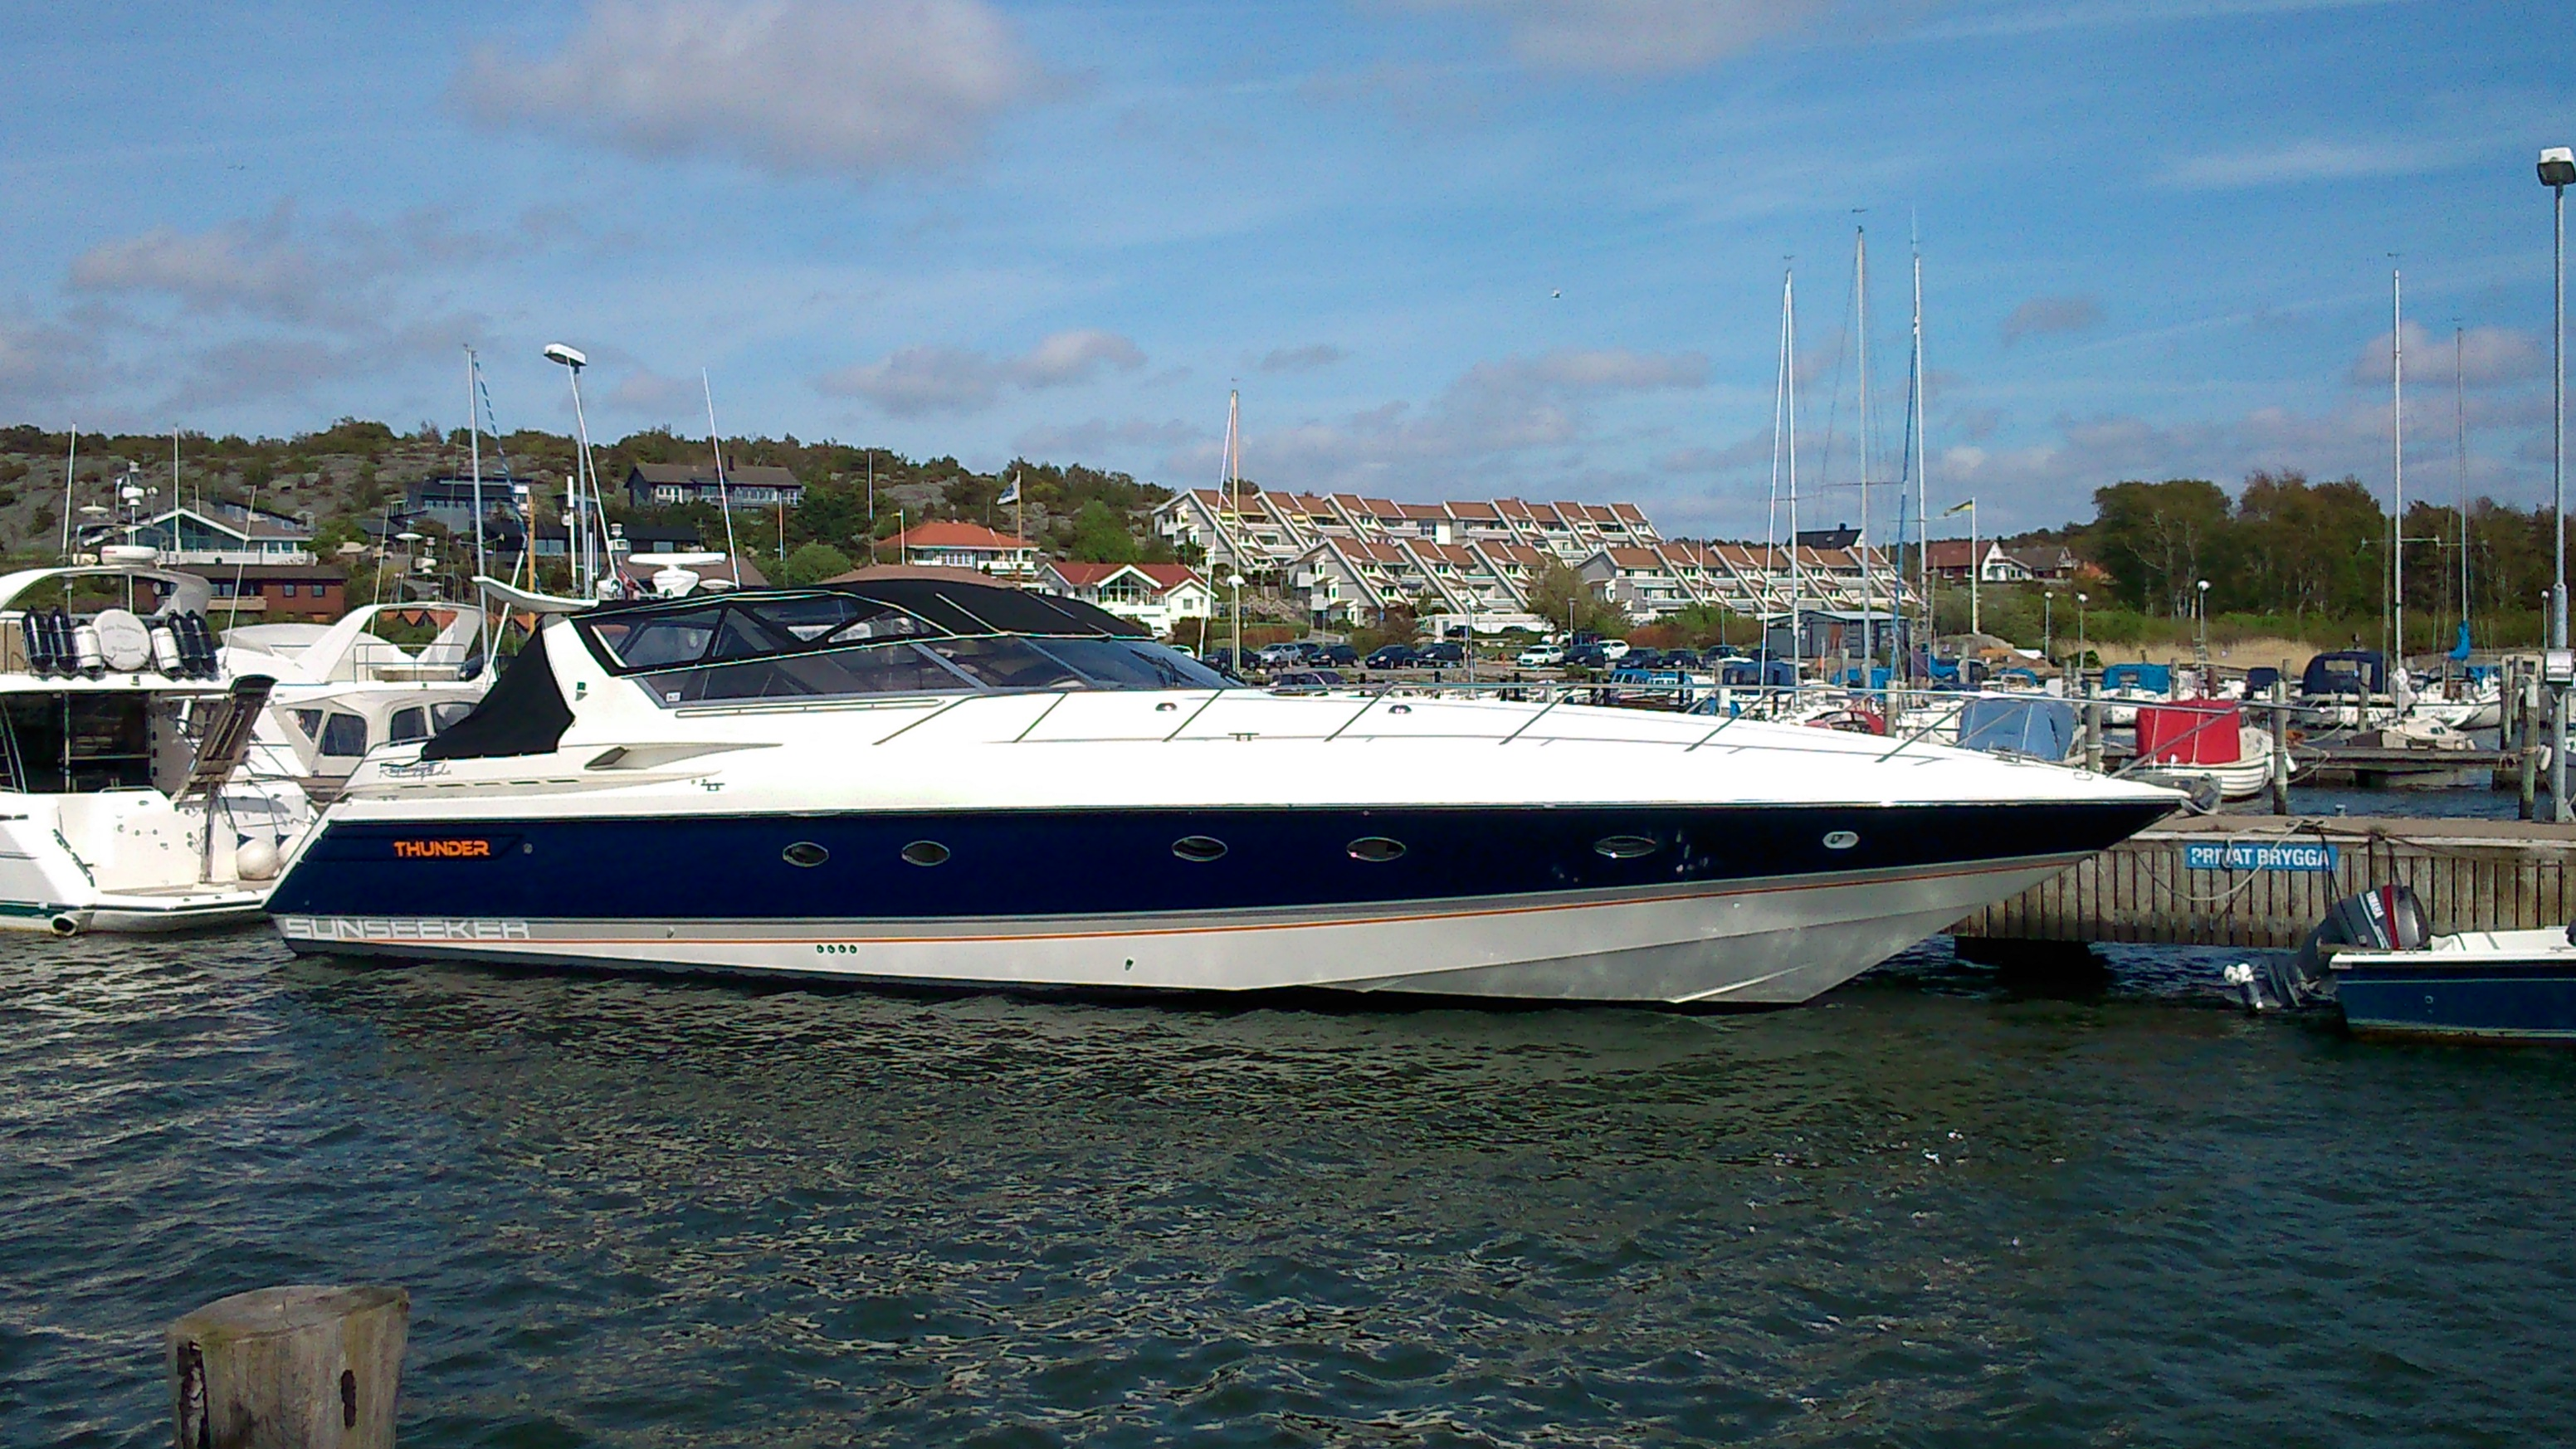 Sunseeker Renegade 60